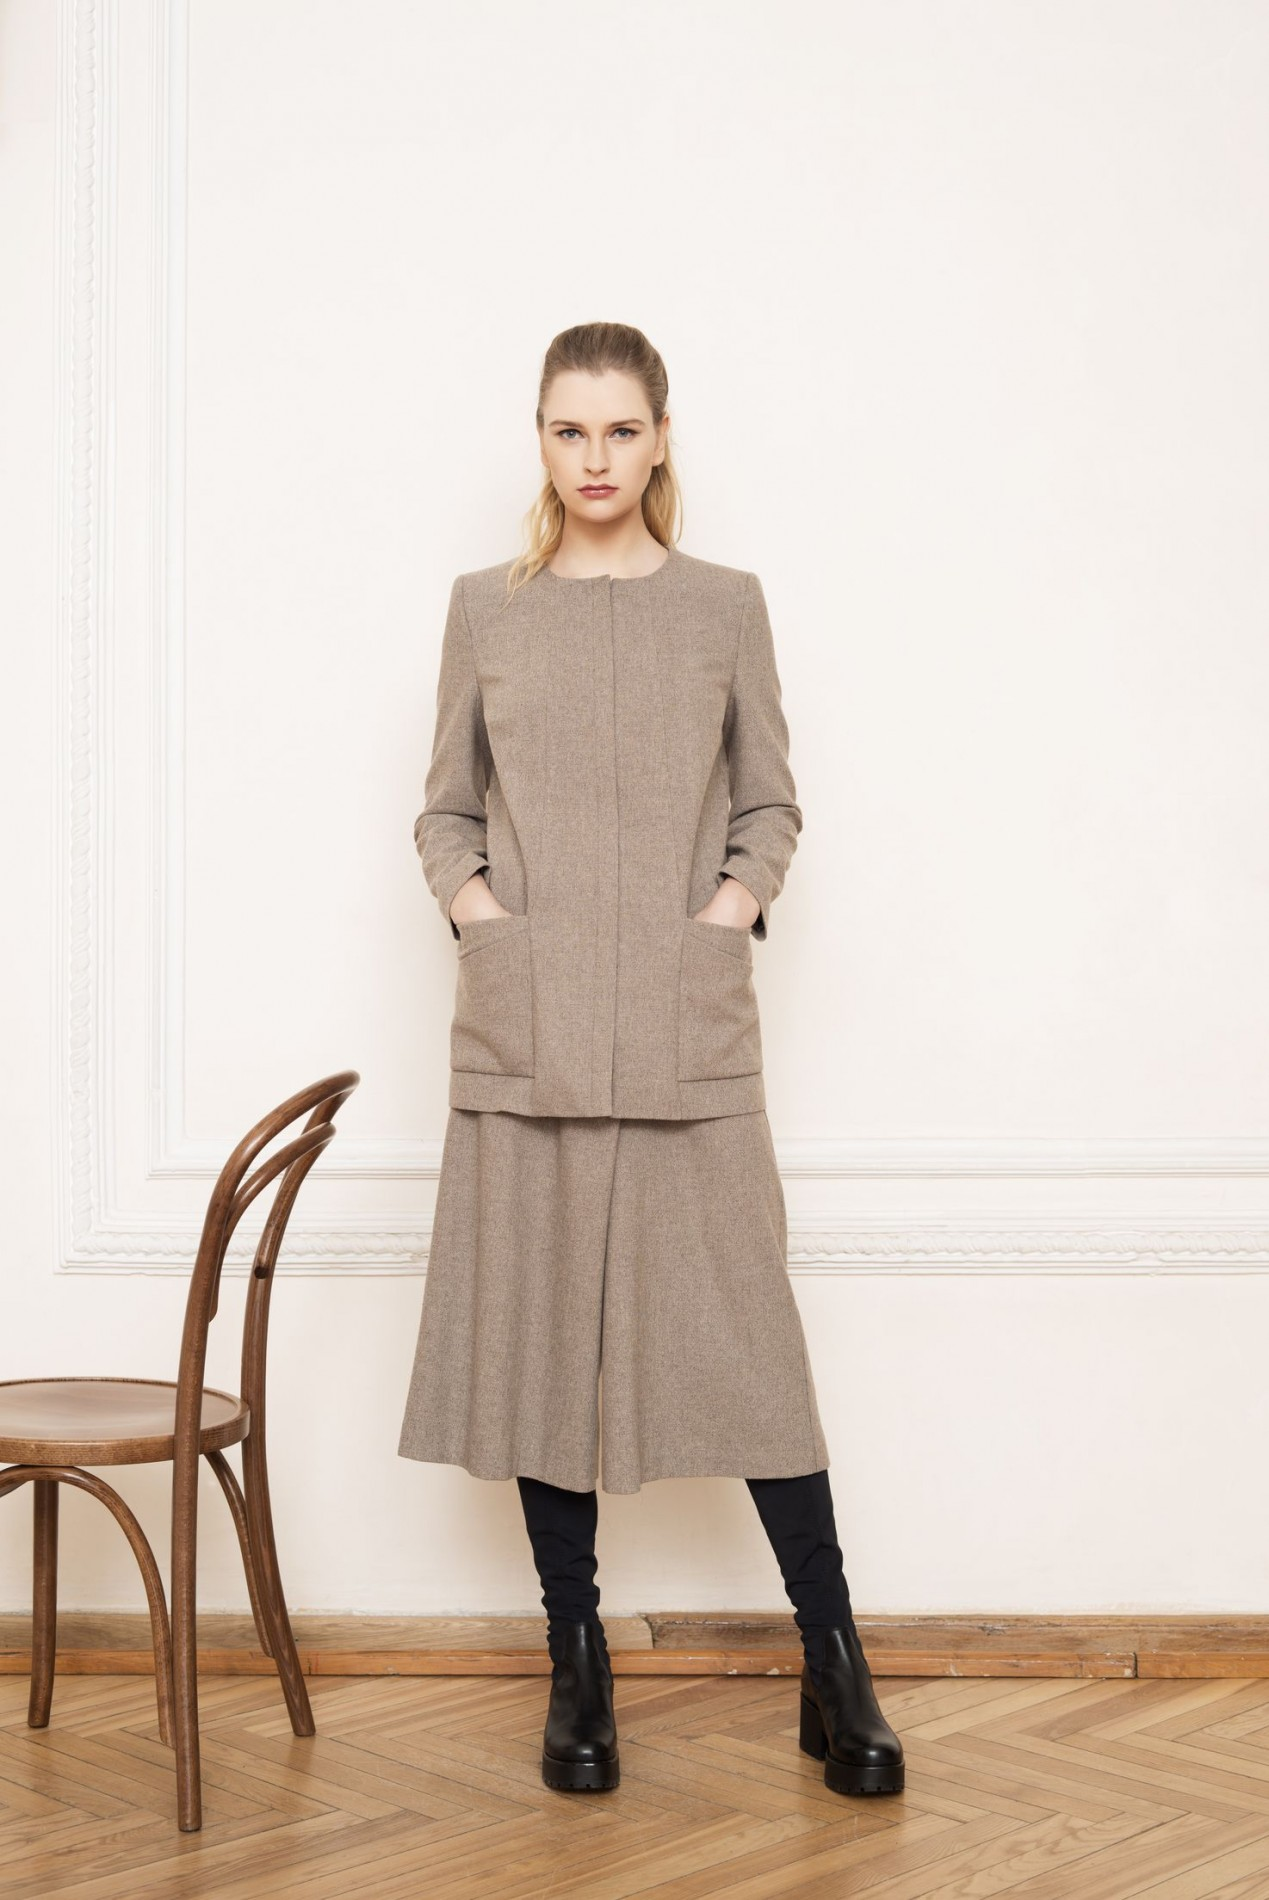 ALPS Long Jacket and ALPS Culottes